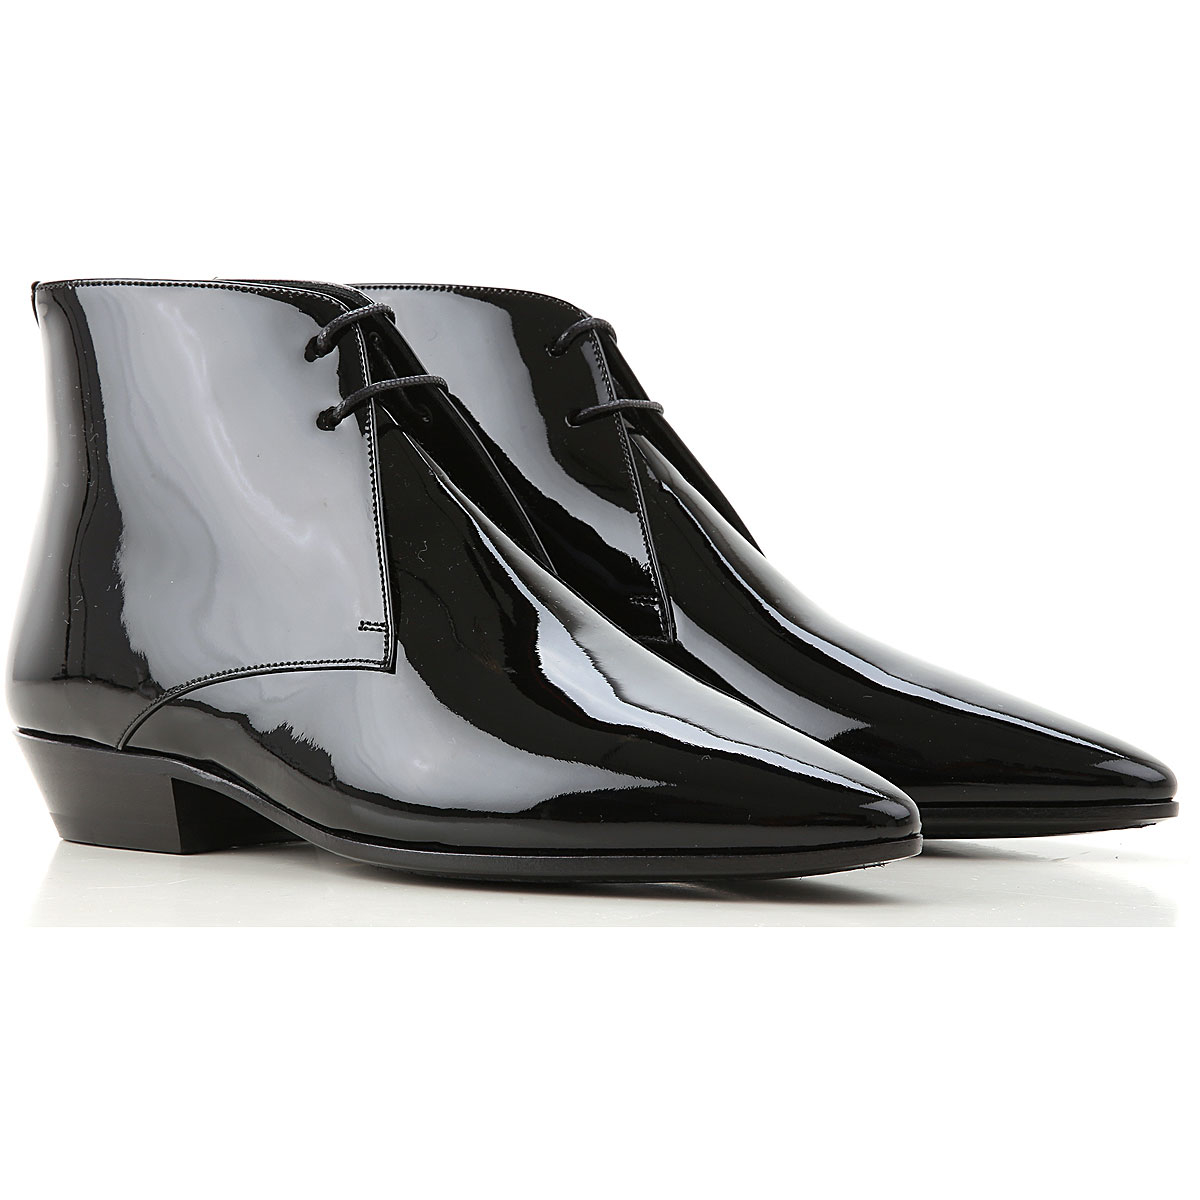 Yves Saint Laurent Lace Up Shoes for Men Oxfords Derbies and Brogues Canada - GOOFASH - Womens LEATHER SHOES